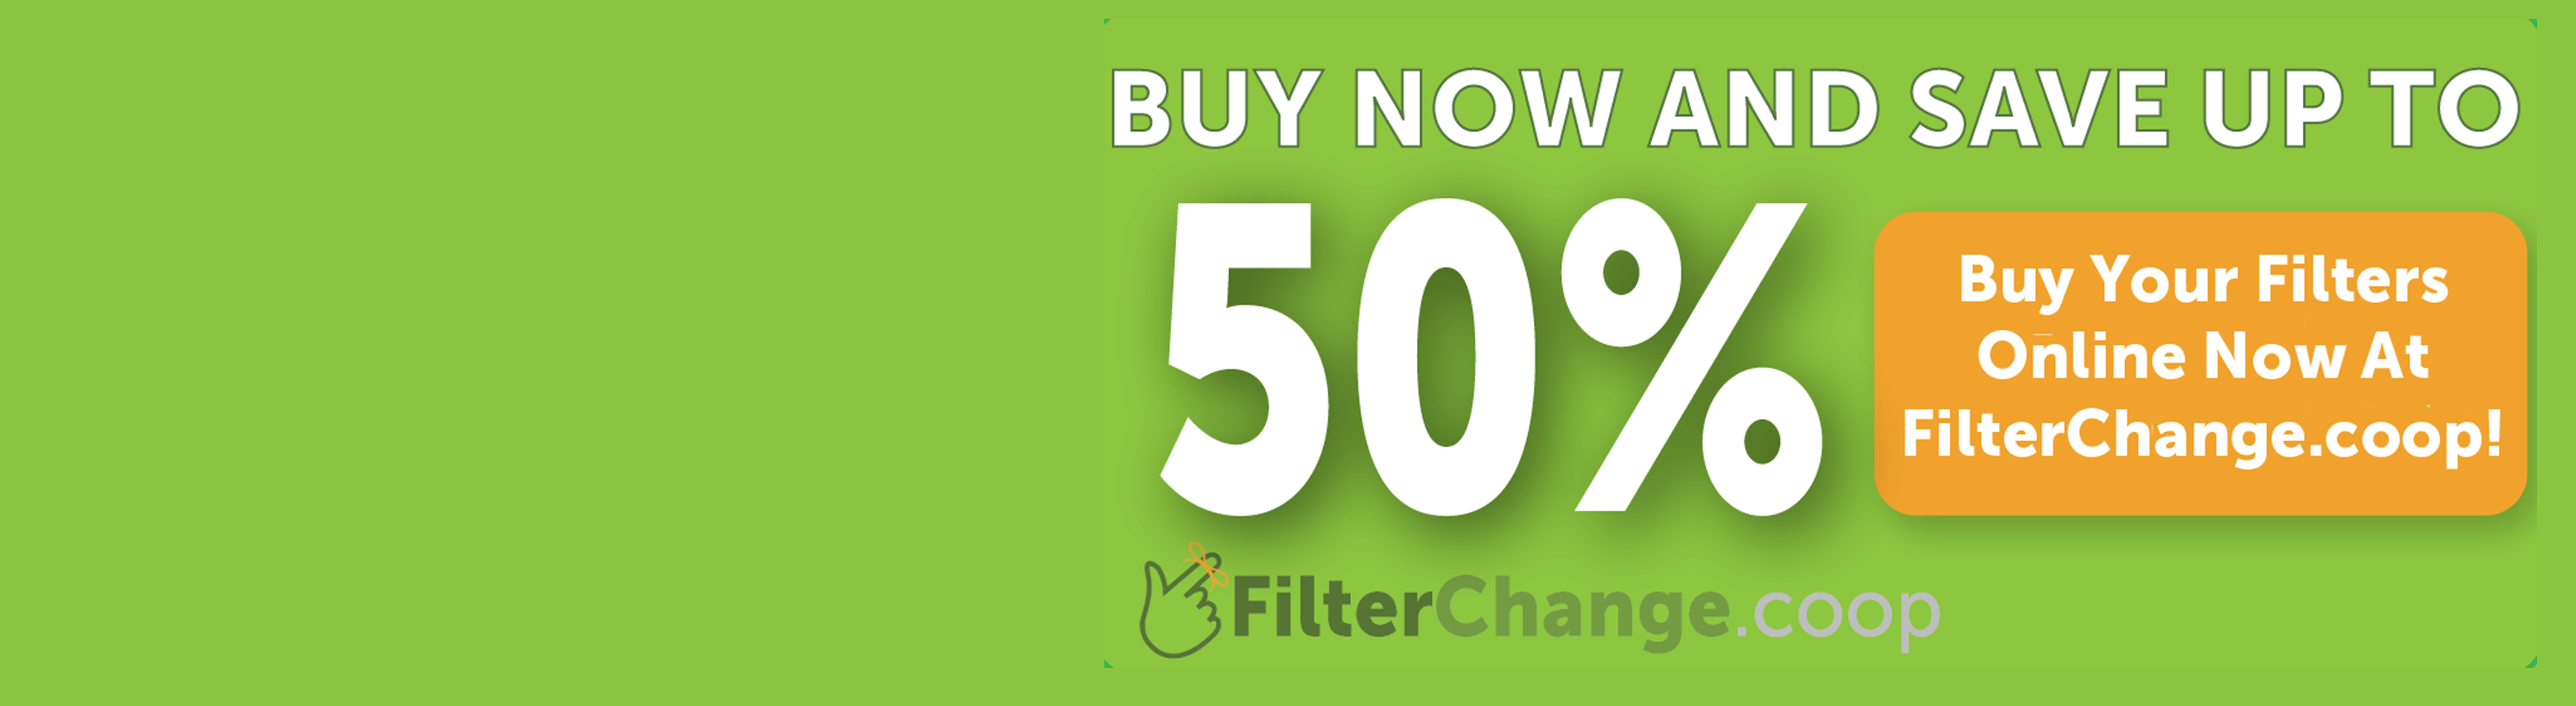 Save up to 50% on Filters